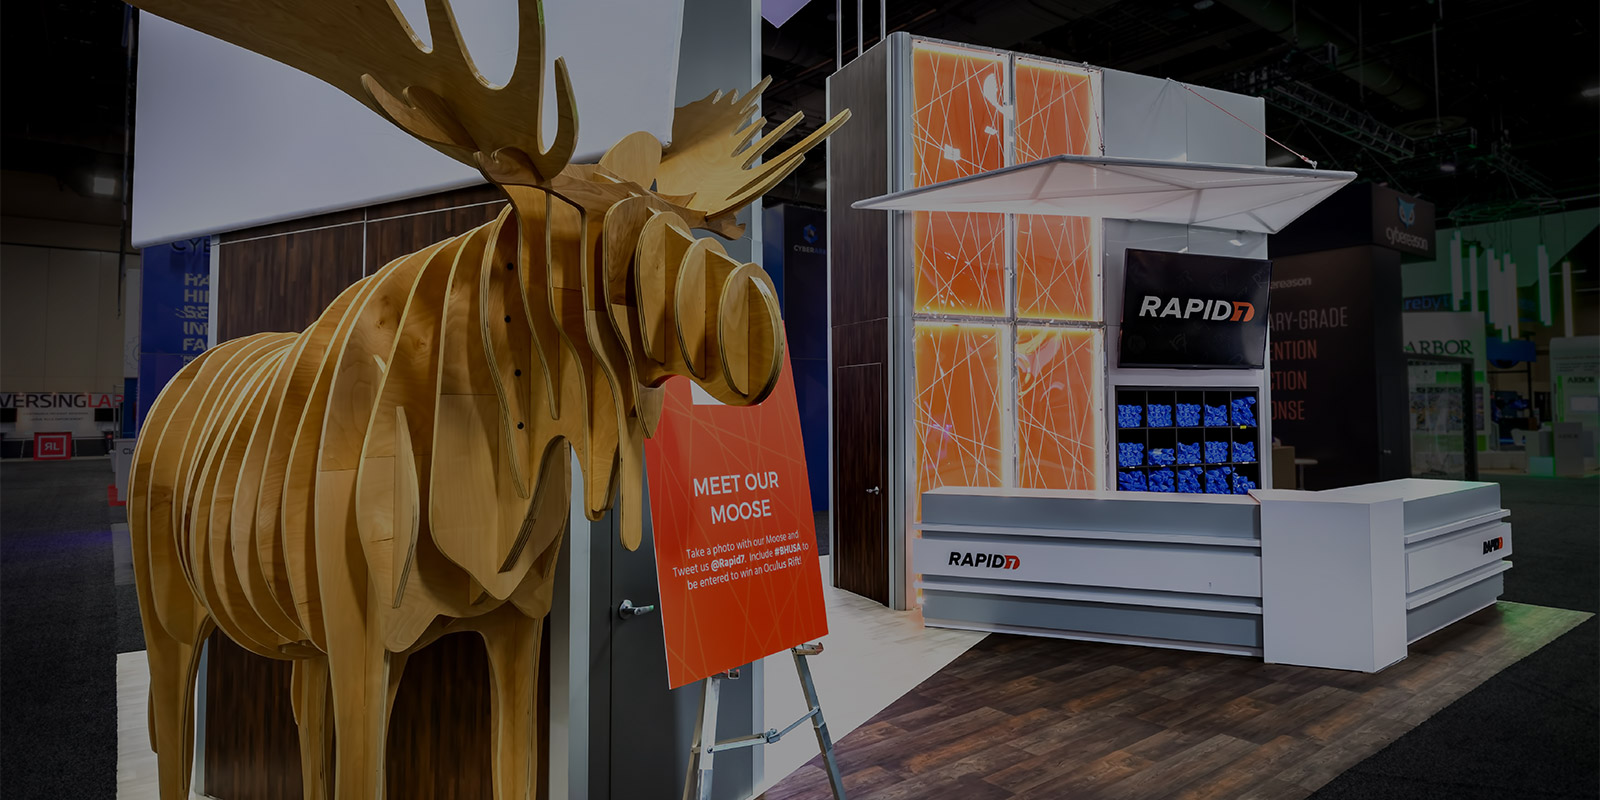 Rental Exhibit Branded Environment for Rapid7